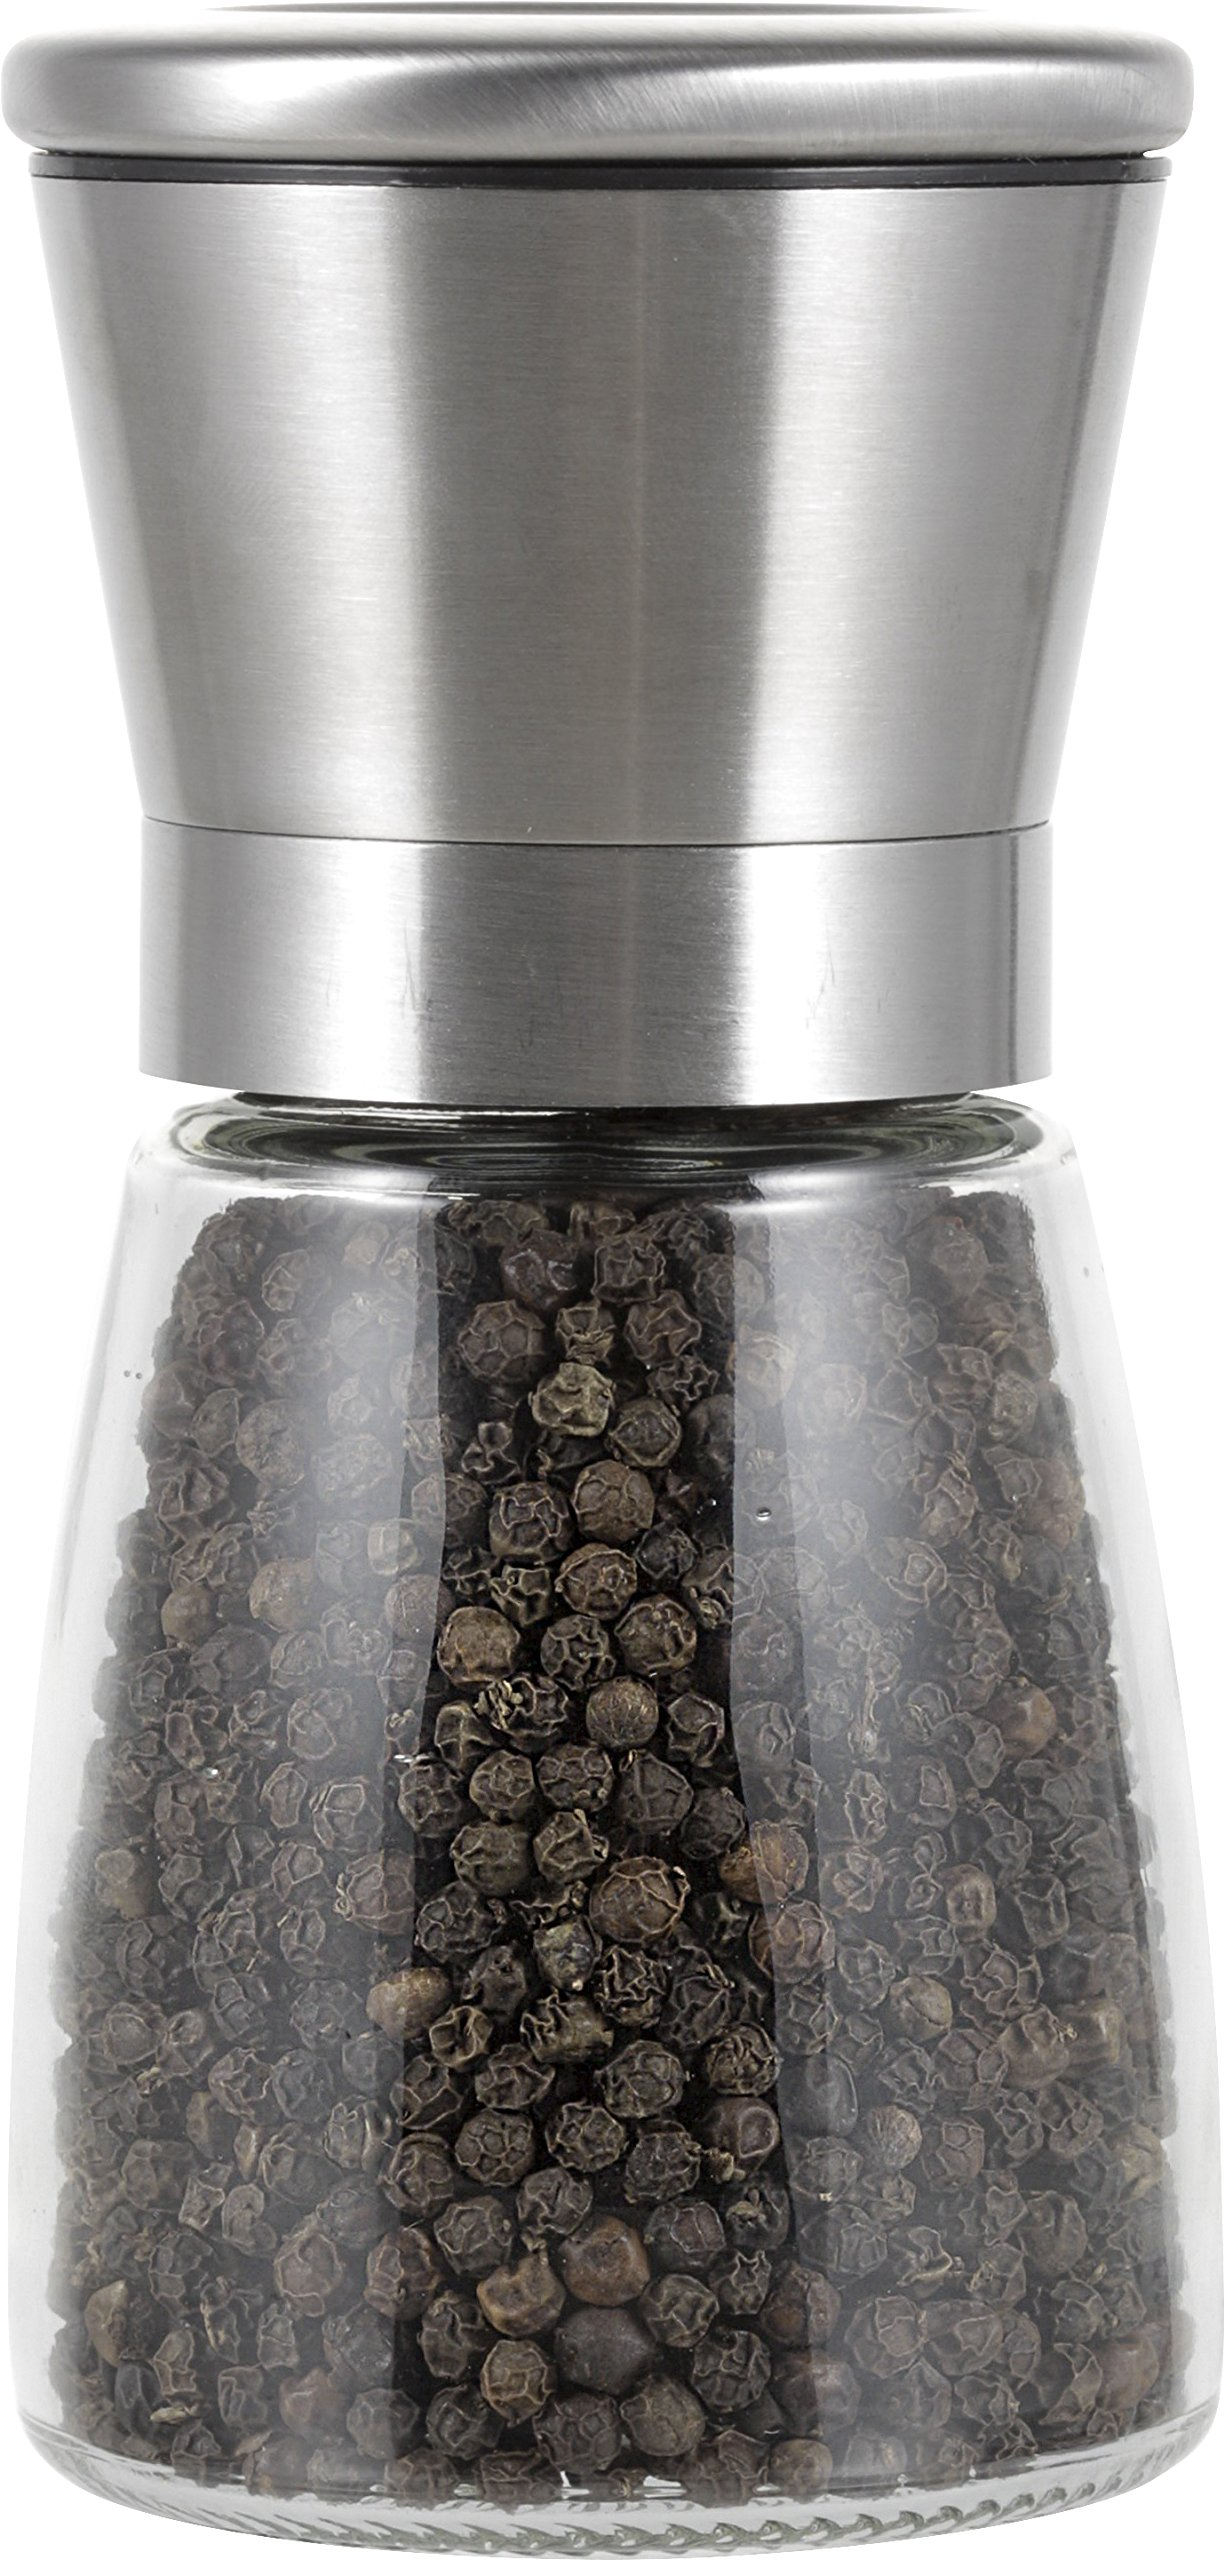 Peppertones Paris Black Cambodian Kampot Gourmet Peppercorns(Whole) Glass Mill, 3.5oz(100g) by Peppertones